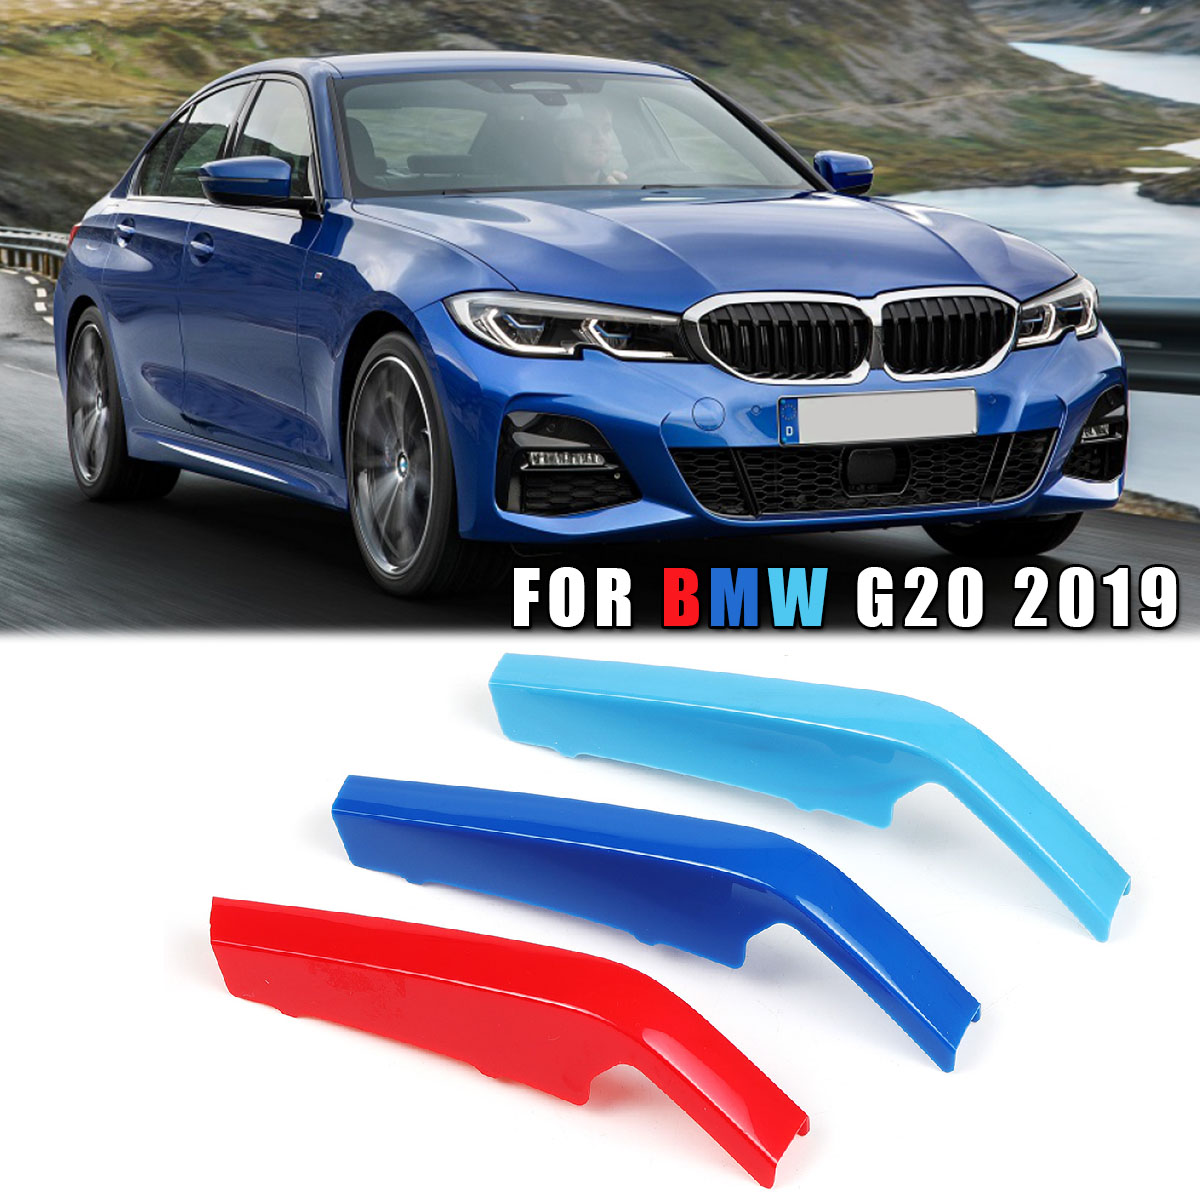 8Bar 3D Sticker Front Kidney Grill Grille Cover Clip Trim M-Color 3 Colors Exterior Accessories For BMW 3-series G20 2019 image